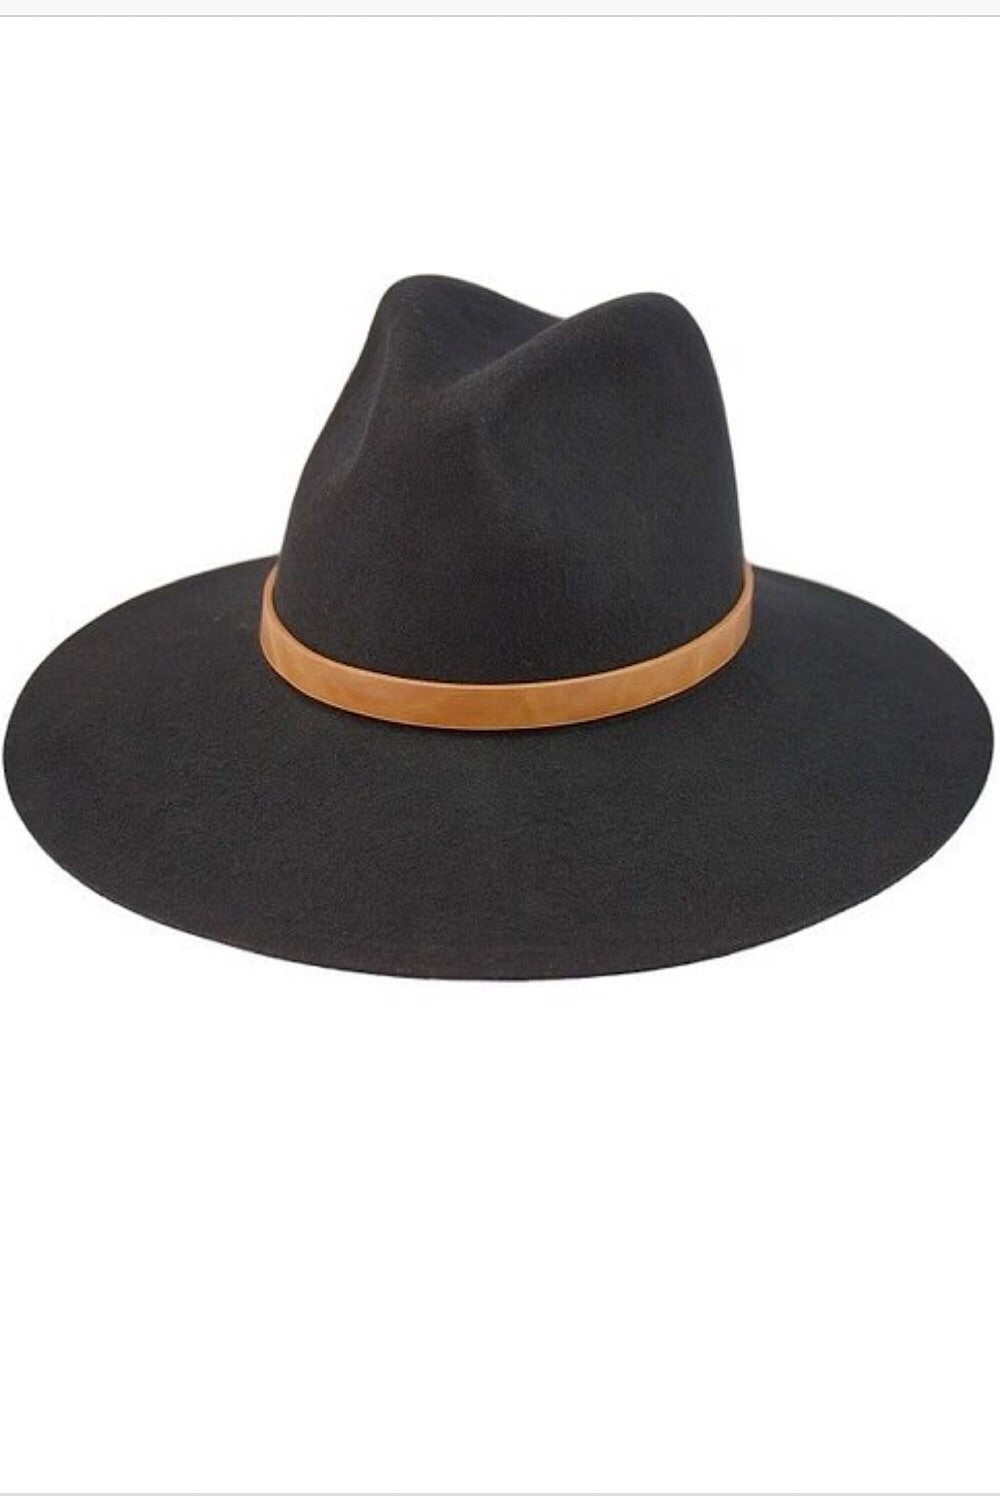 Lost at Night Panama Hat